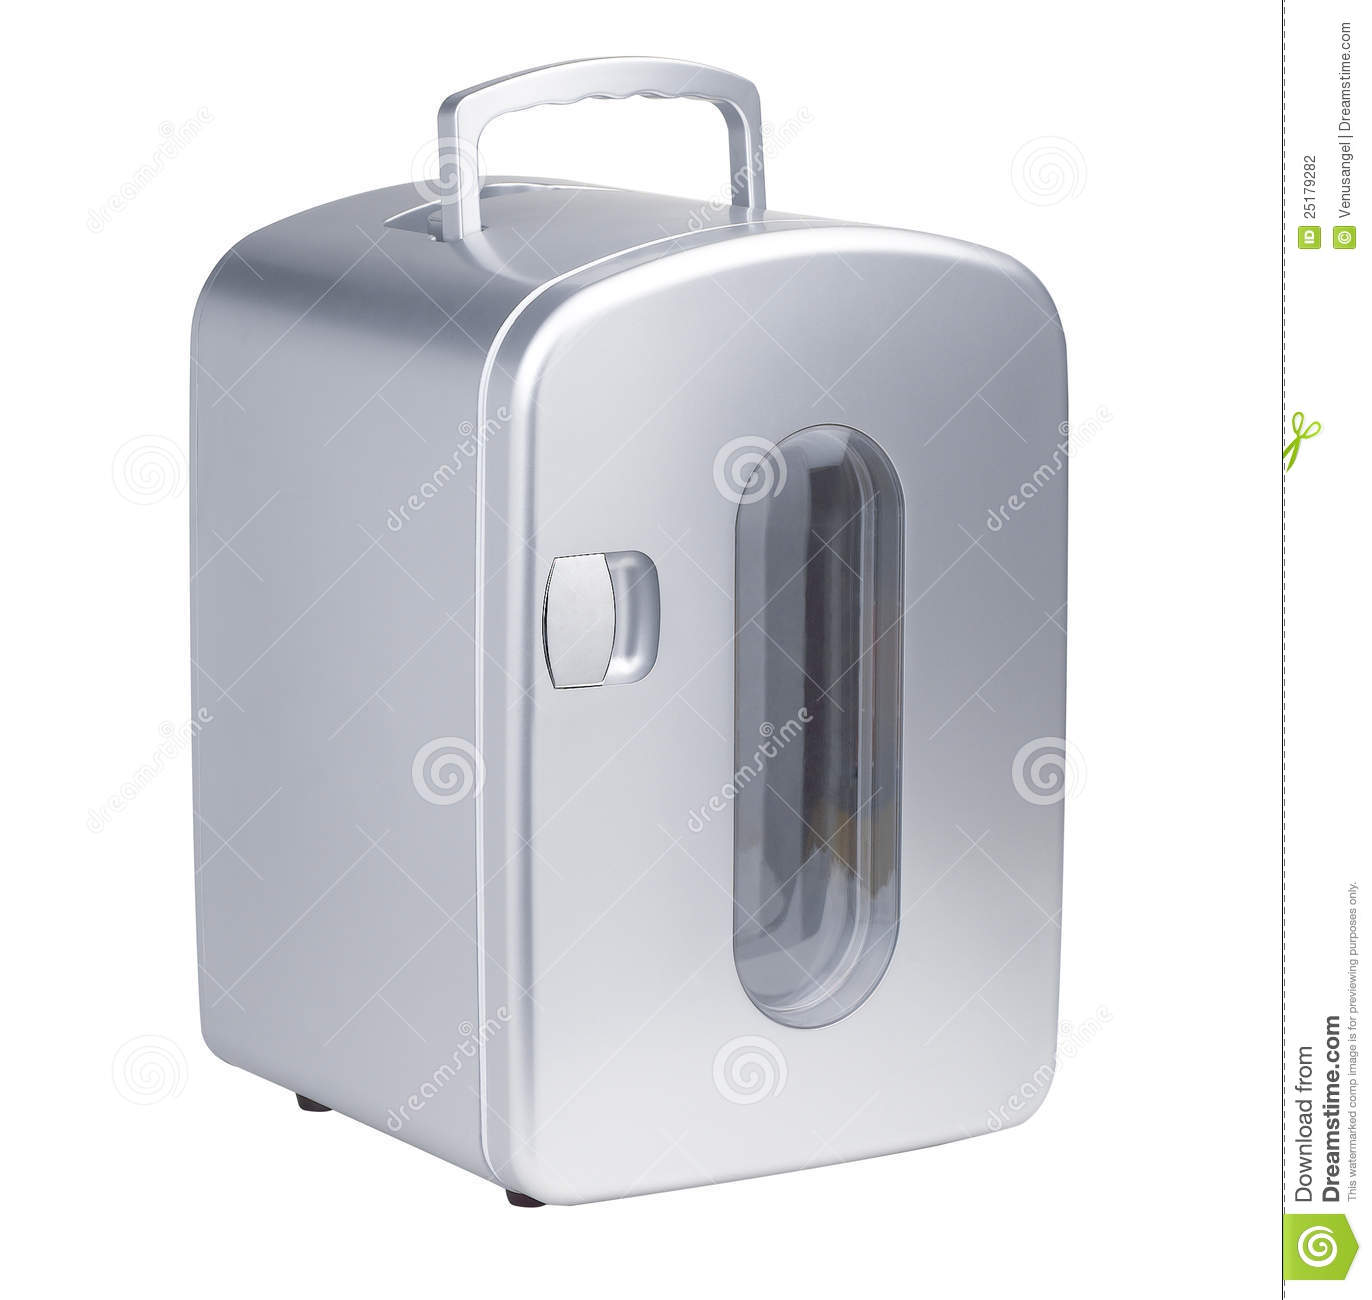 Small Portable Fridge A Small Portable Refrigerator Stock Photo Image Of Keeping